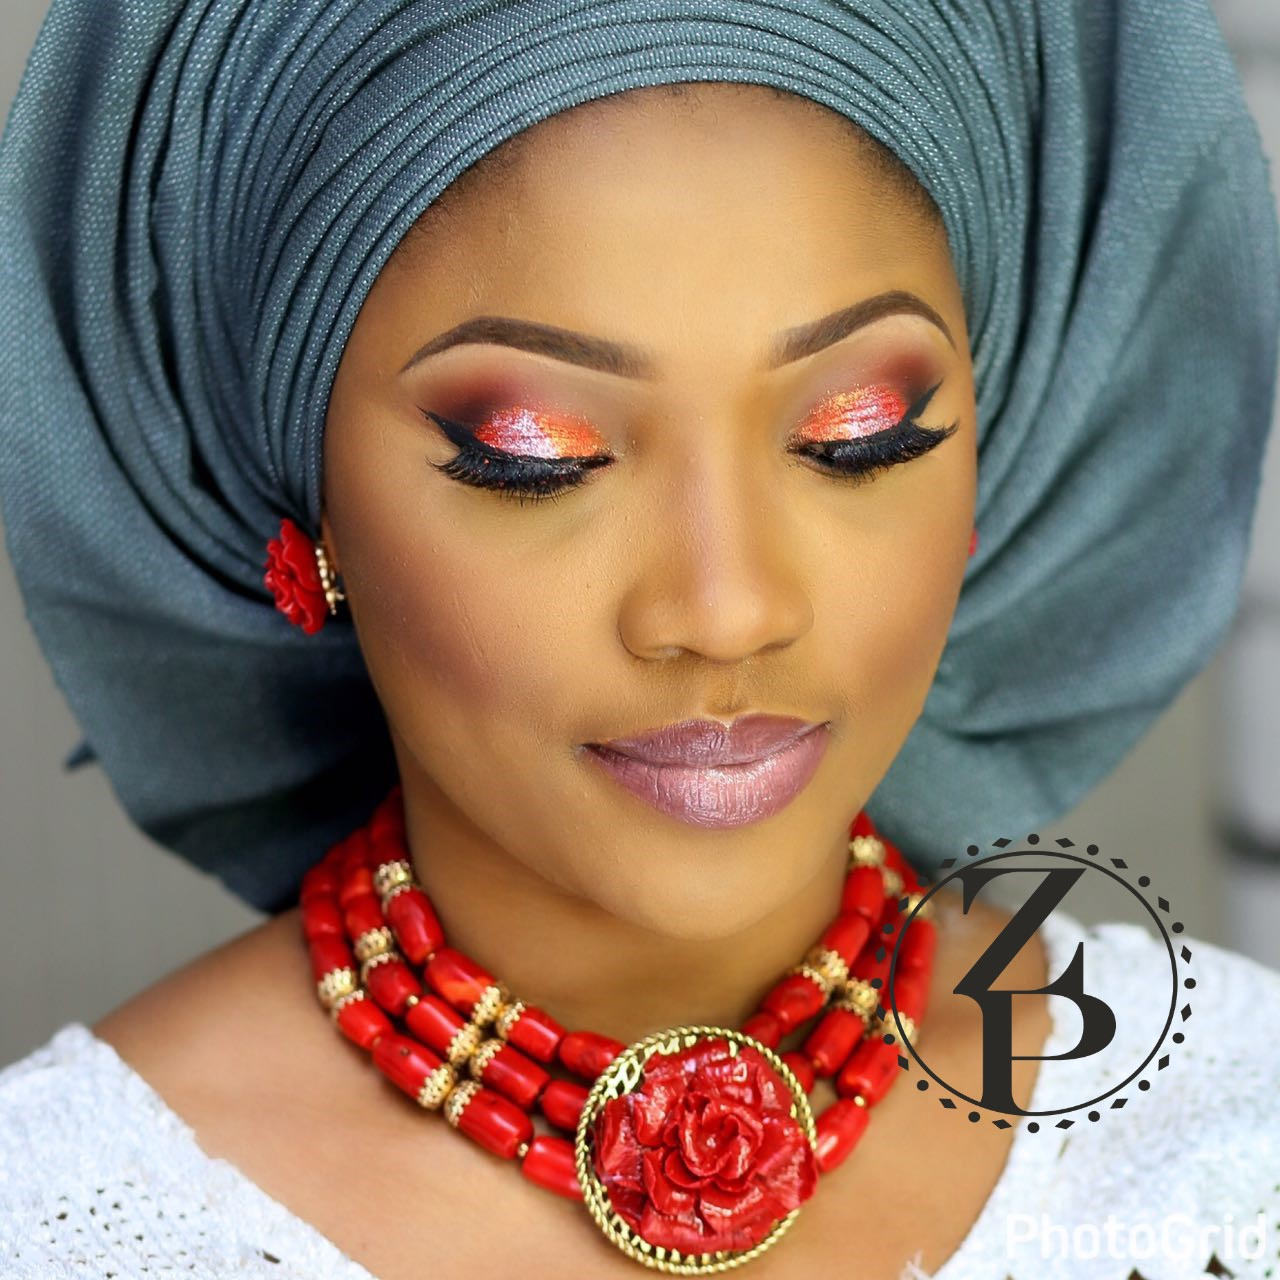 yoruba-bride-in-red-coral-beads-jewelry-white-aso-oke-gele-makeup-nigerian-wedding-zuri-perle.jpg